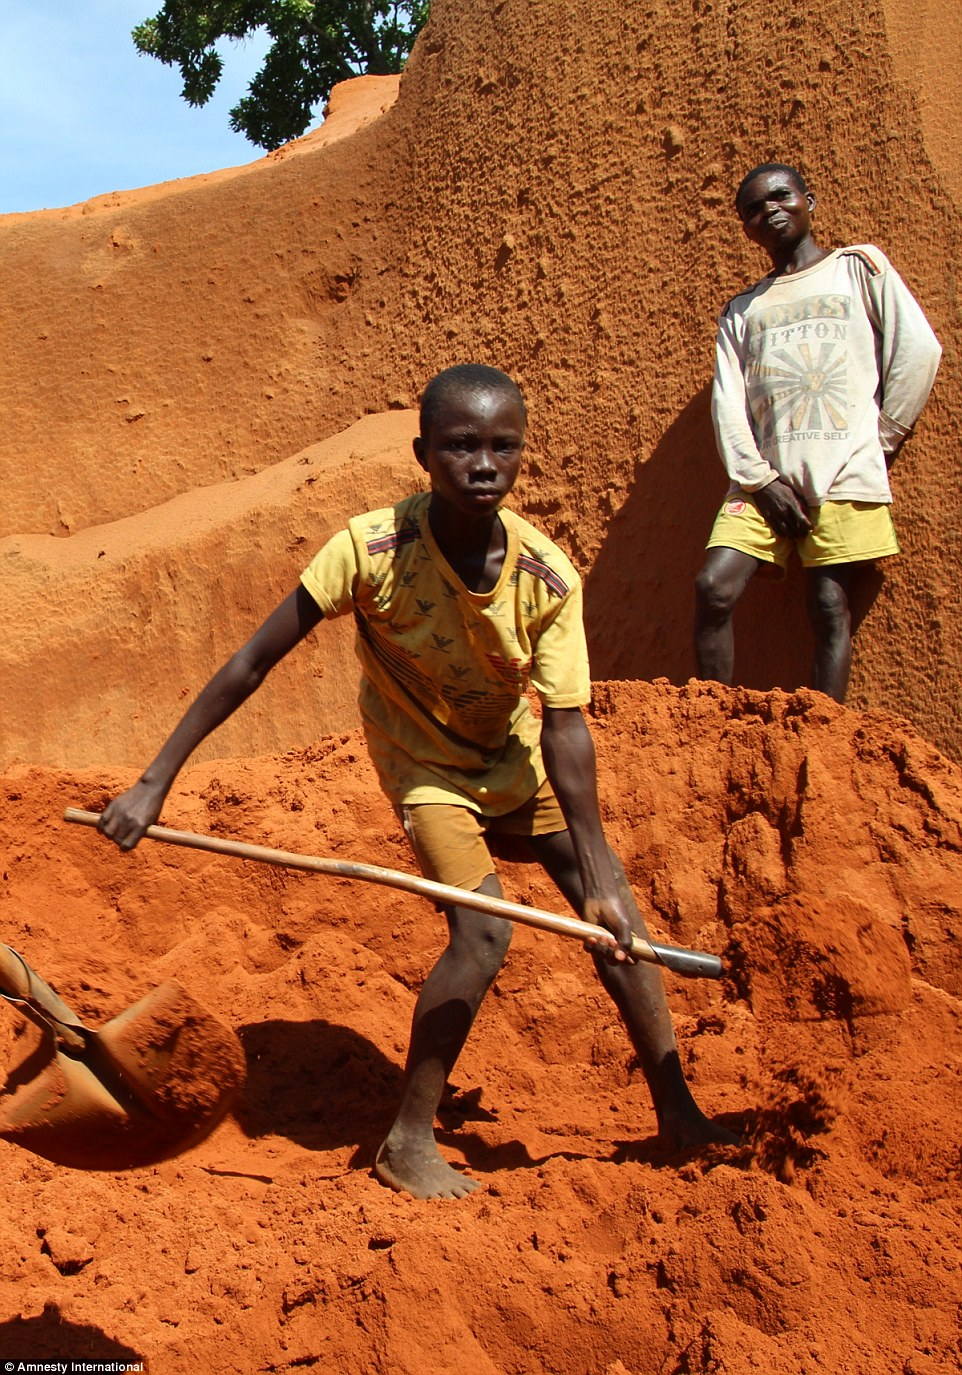 2cf963ba00000578-3256249-slave_labour_an_11_year_old_boy_working_at_a_diamond_mine_in_the-a-109_1443708626800